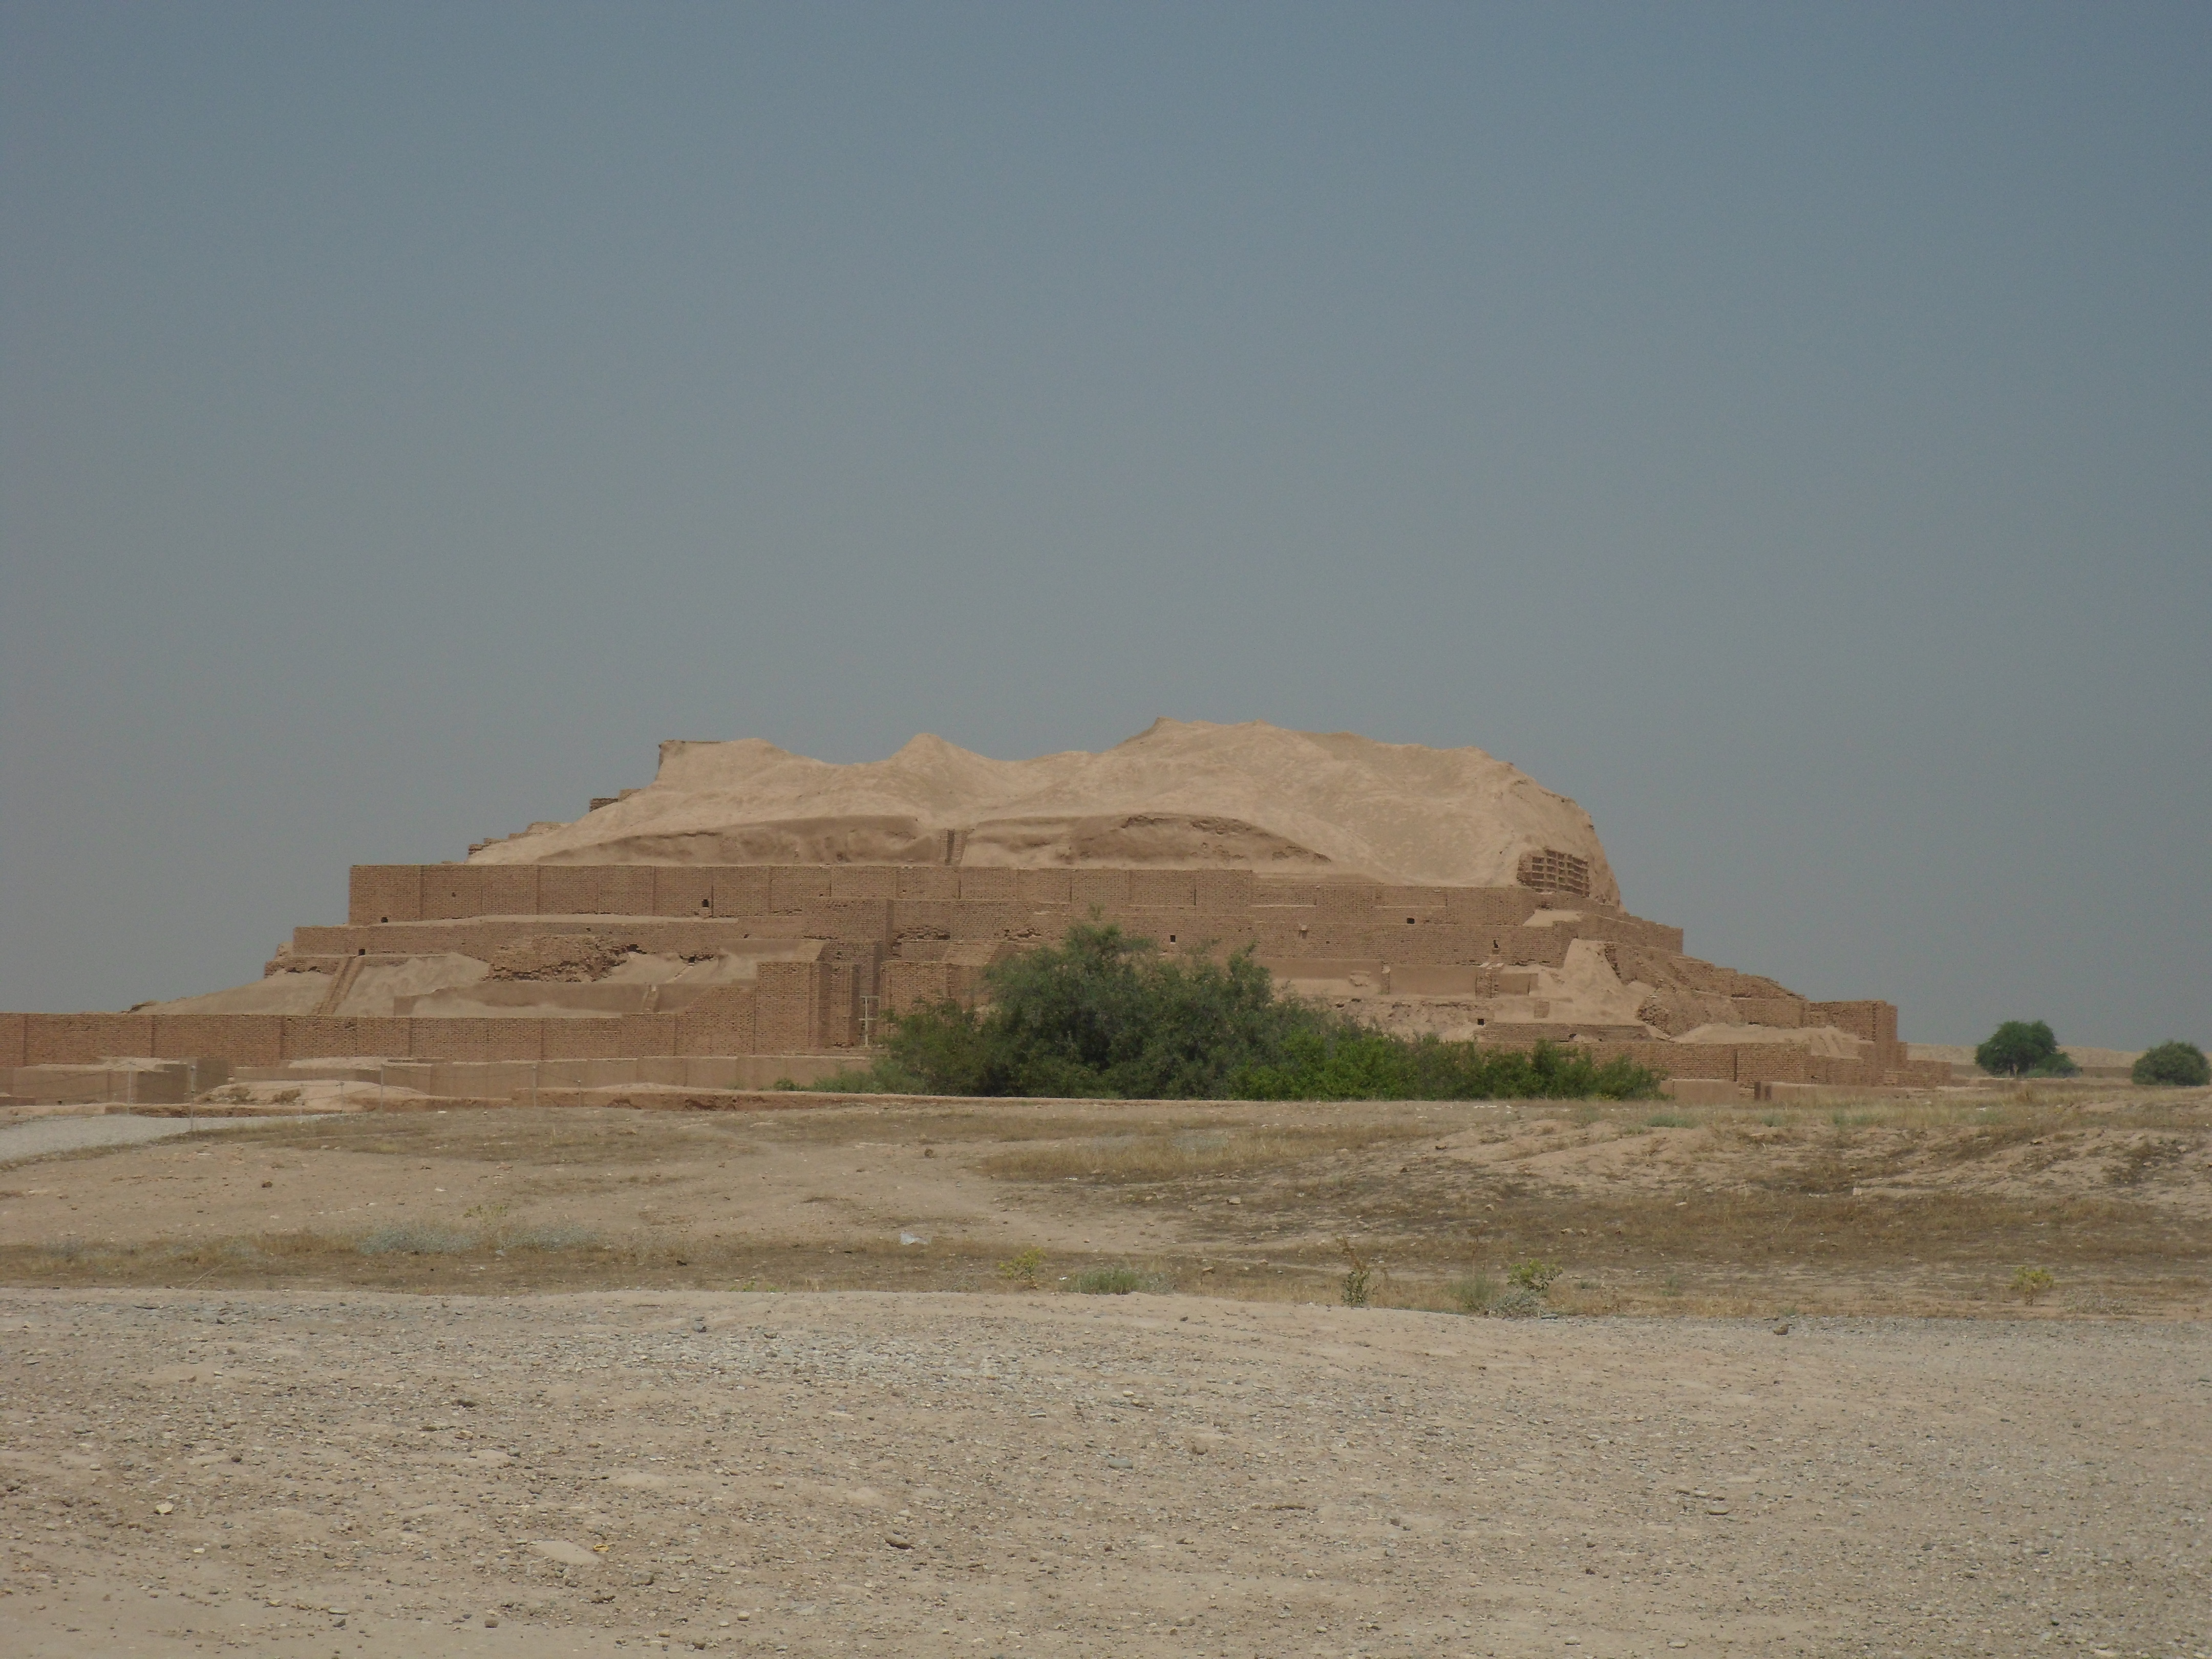 An eroded ziggurat against the background of the blue sky with bushes and depressions in the foreground